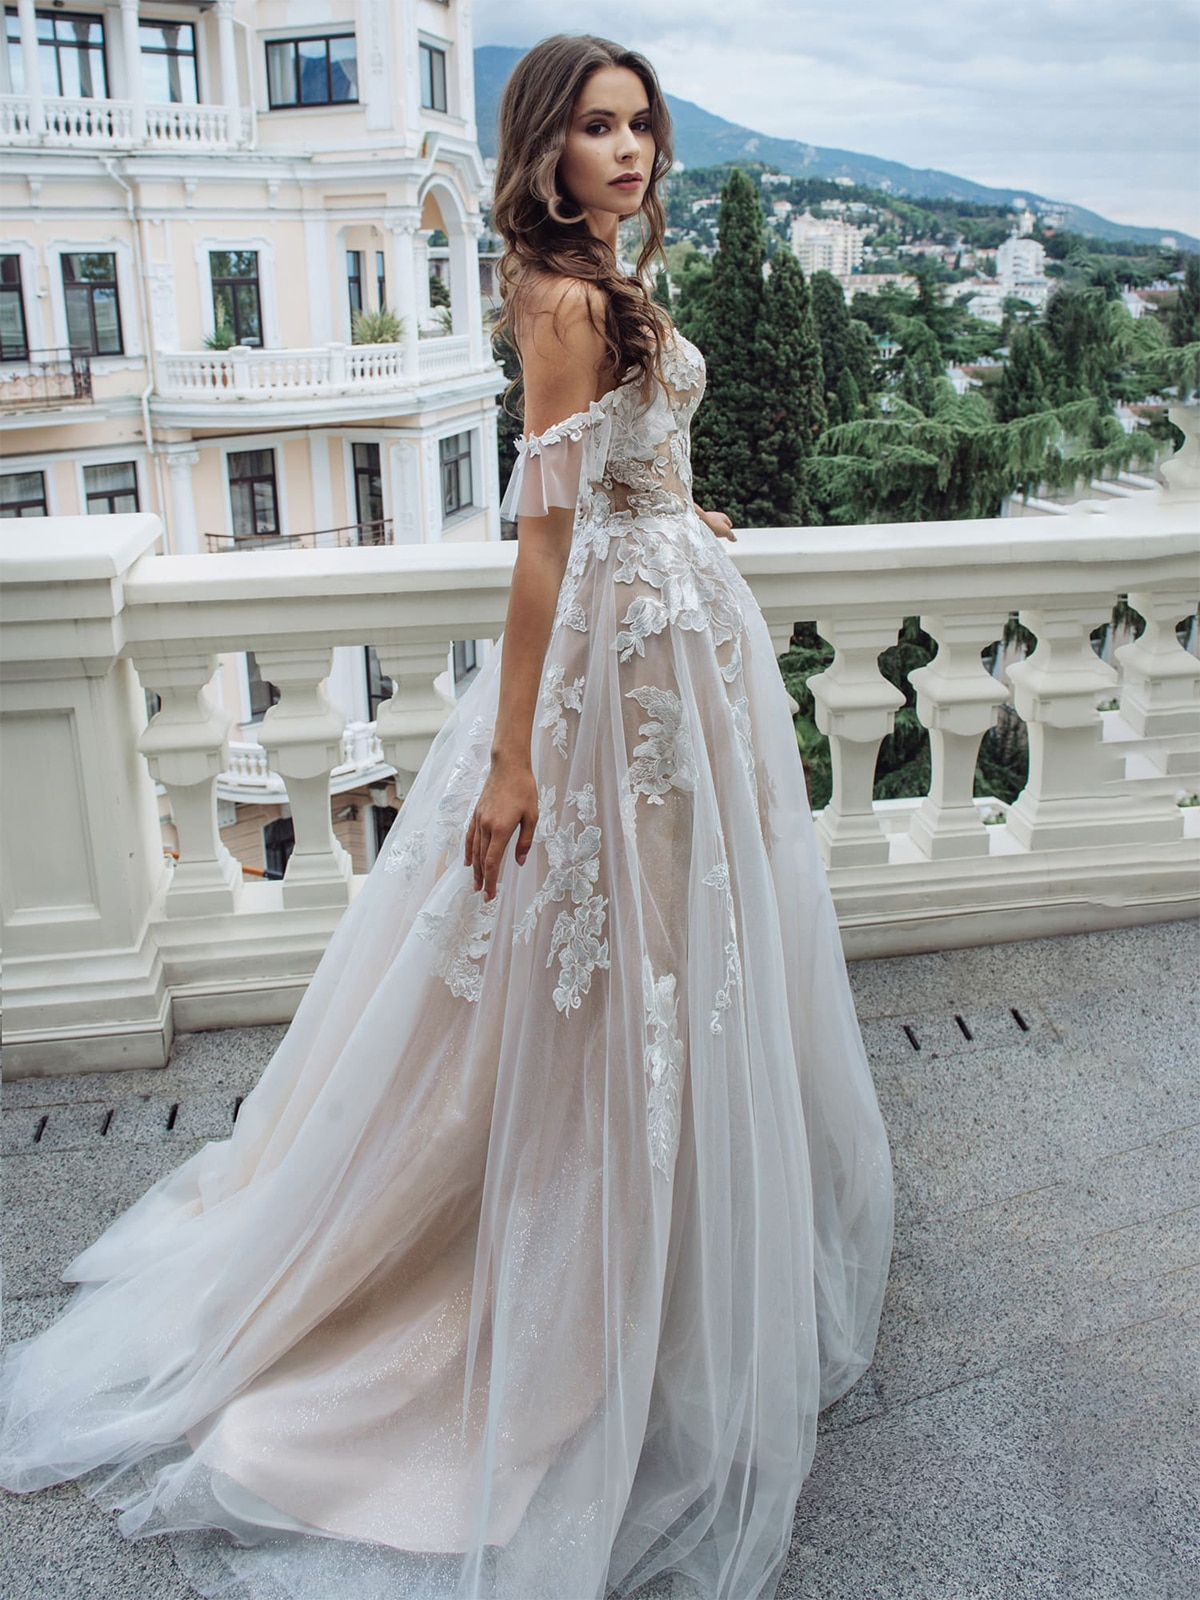 sweetheart-champagne-appliqued-bridal-gown-off-the-shoulder-romantic-buttons-photography-2021-custom-made-tulle-wedding-dress